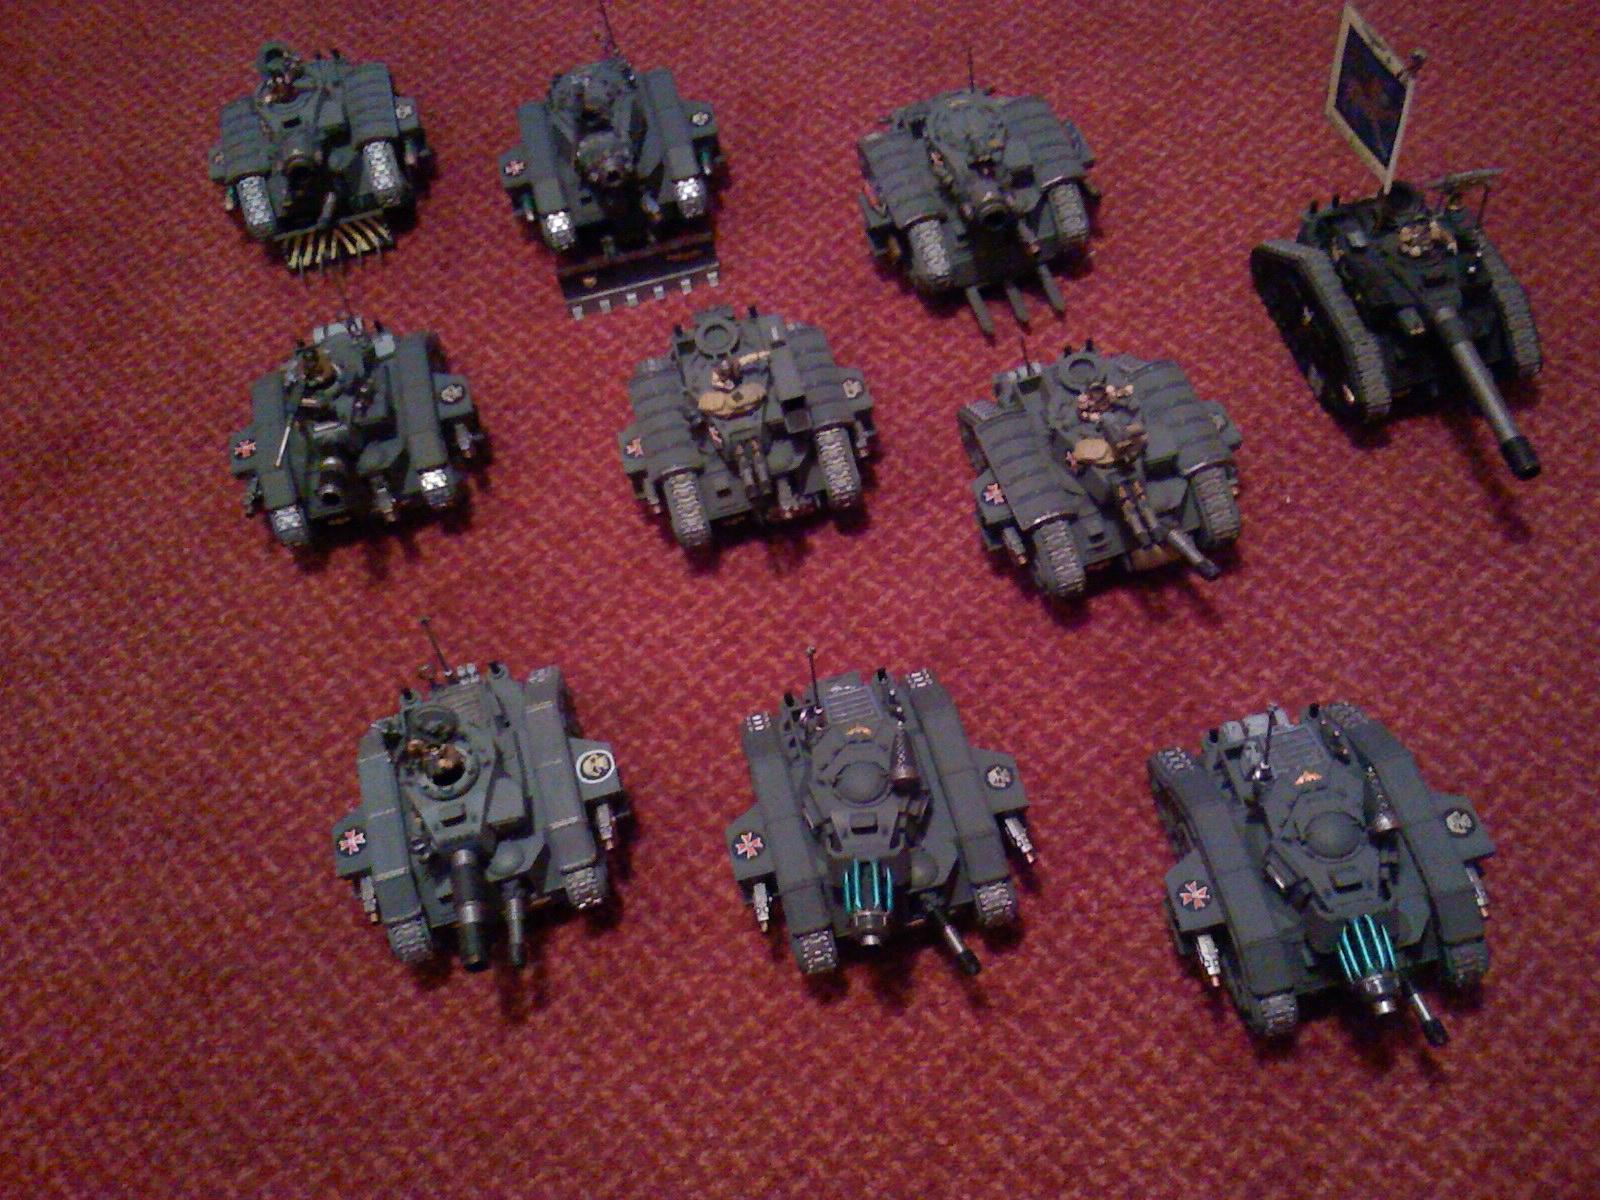 Armored Company, Imperial Guard, Lead Company, Warhammer 40,000